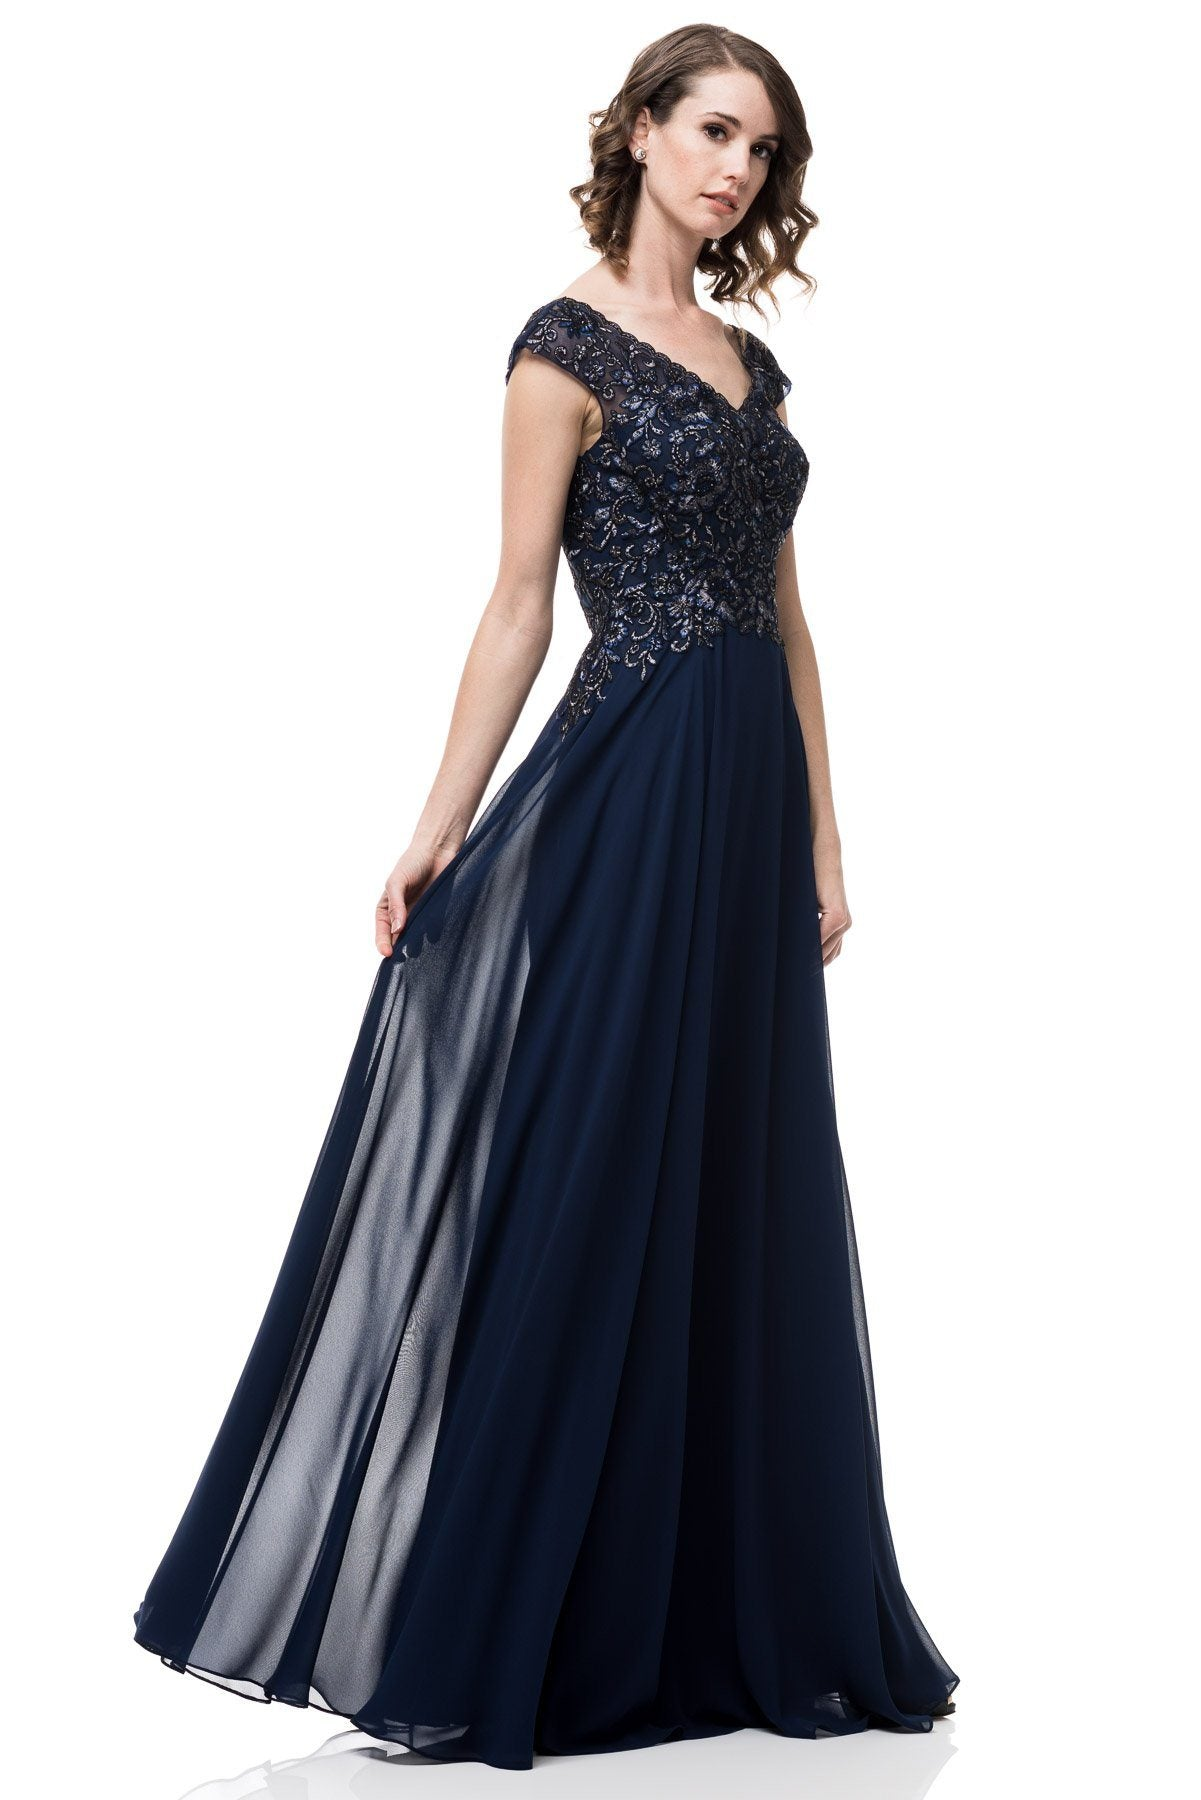 95b534789d9 ... Plus size navy evening gown  PS2456-Simply Fab Dress ...